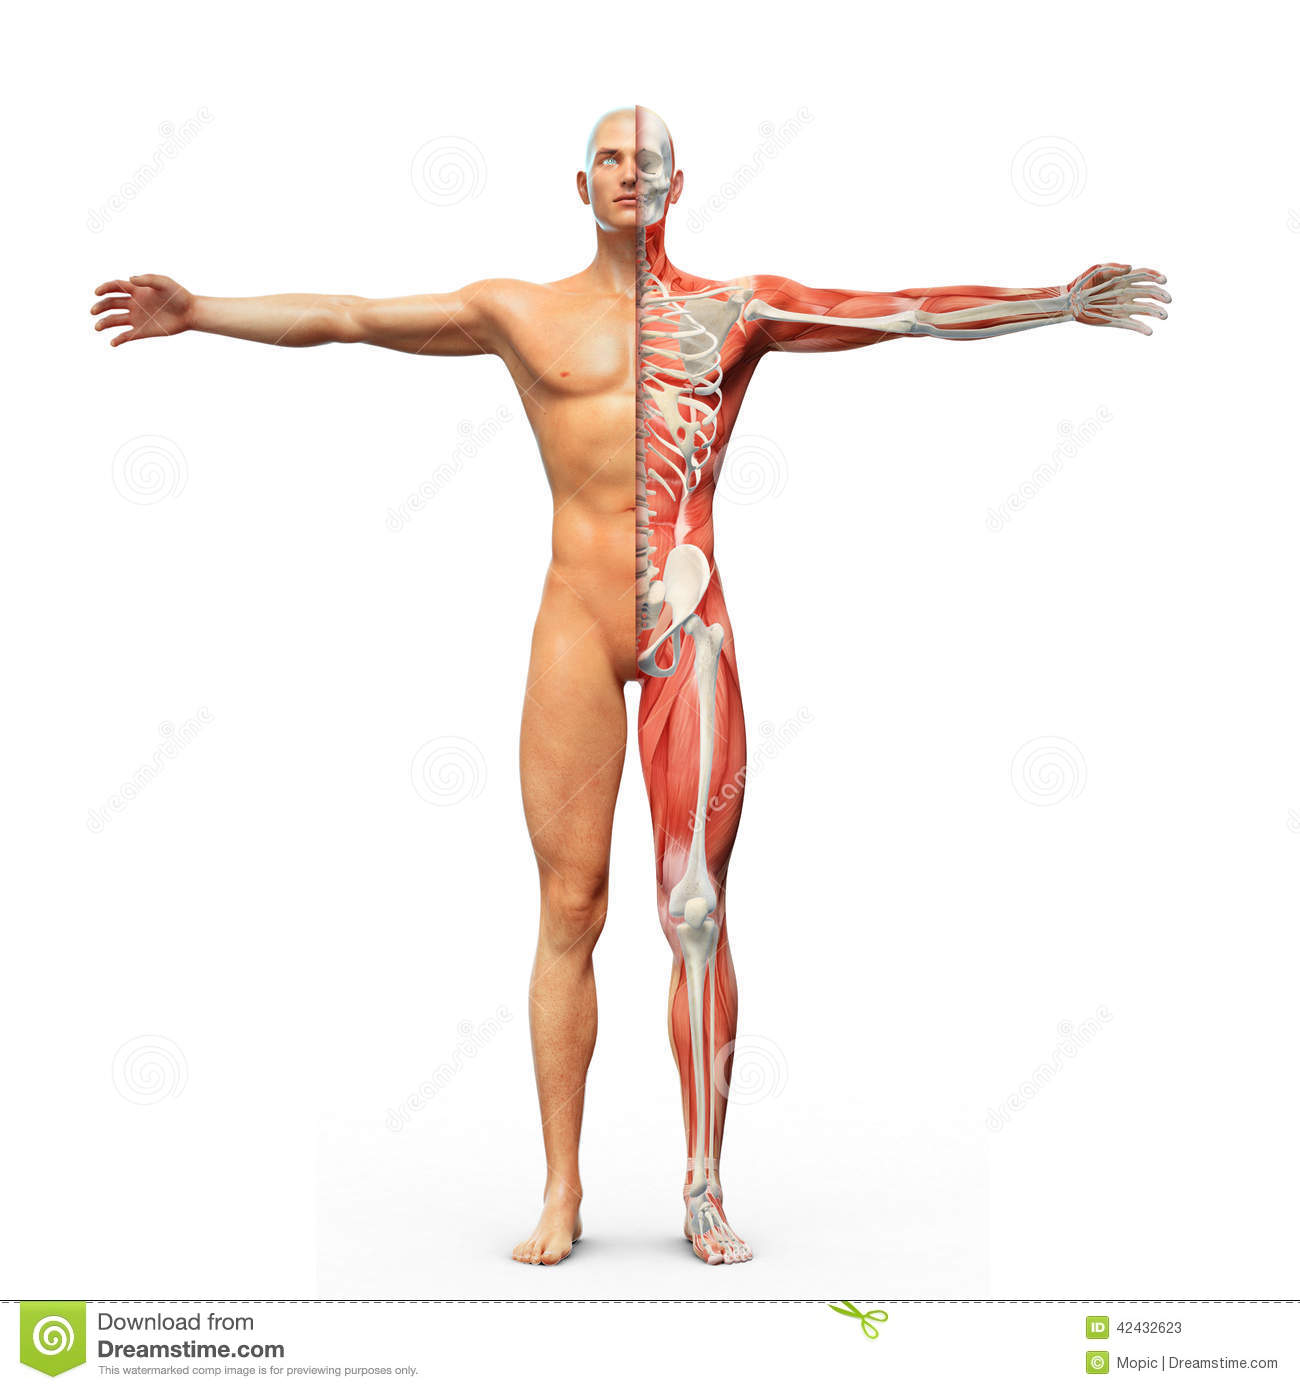 Human anatomy stock illustration. Illustration of muscle - 42432623